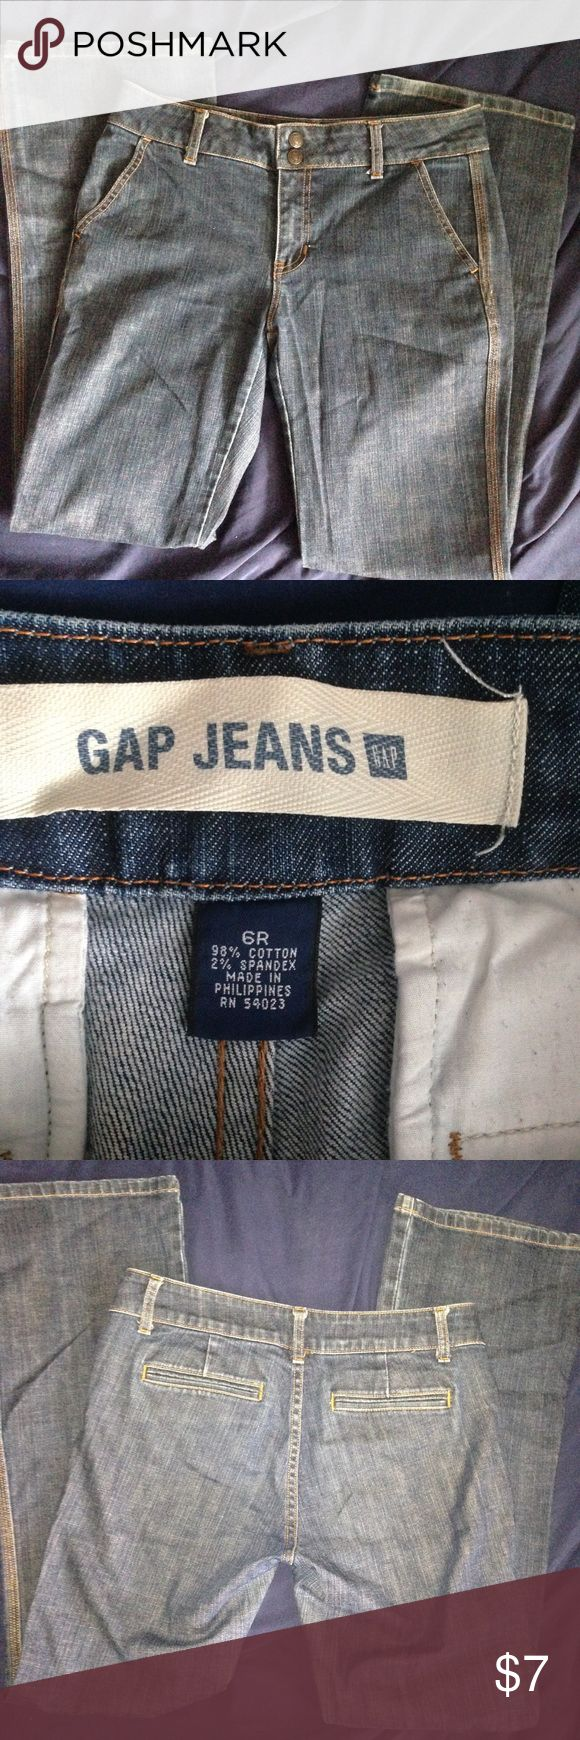 """Gap trouser Jean, 6/8R Older but goody Gap trouser jeans. Slant front pockets, slit rear pockets. Size 6R but generously cut (as I am not a size 6 Haha). I'd call them more like an 8-10. Measurements flat are: waist flat 16"""", hips 19"""", rise 9"""", inseam 32"""", leg opening 9.25"""". These are in good+ condition. There is the Faintest wear (lighter spot) to the Left knee. These are blue, not black/gray-blue like my lighting wants you to believe 🙄 truest color is close up of rear pocket GAP Jeans…"""